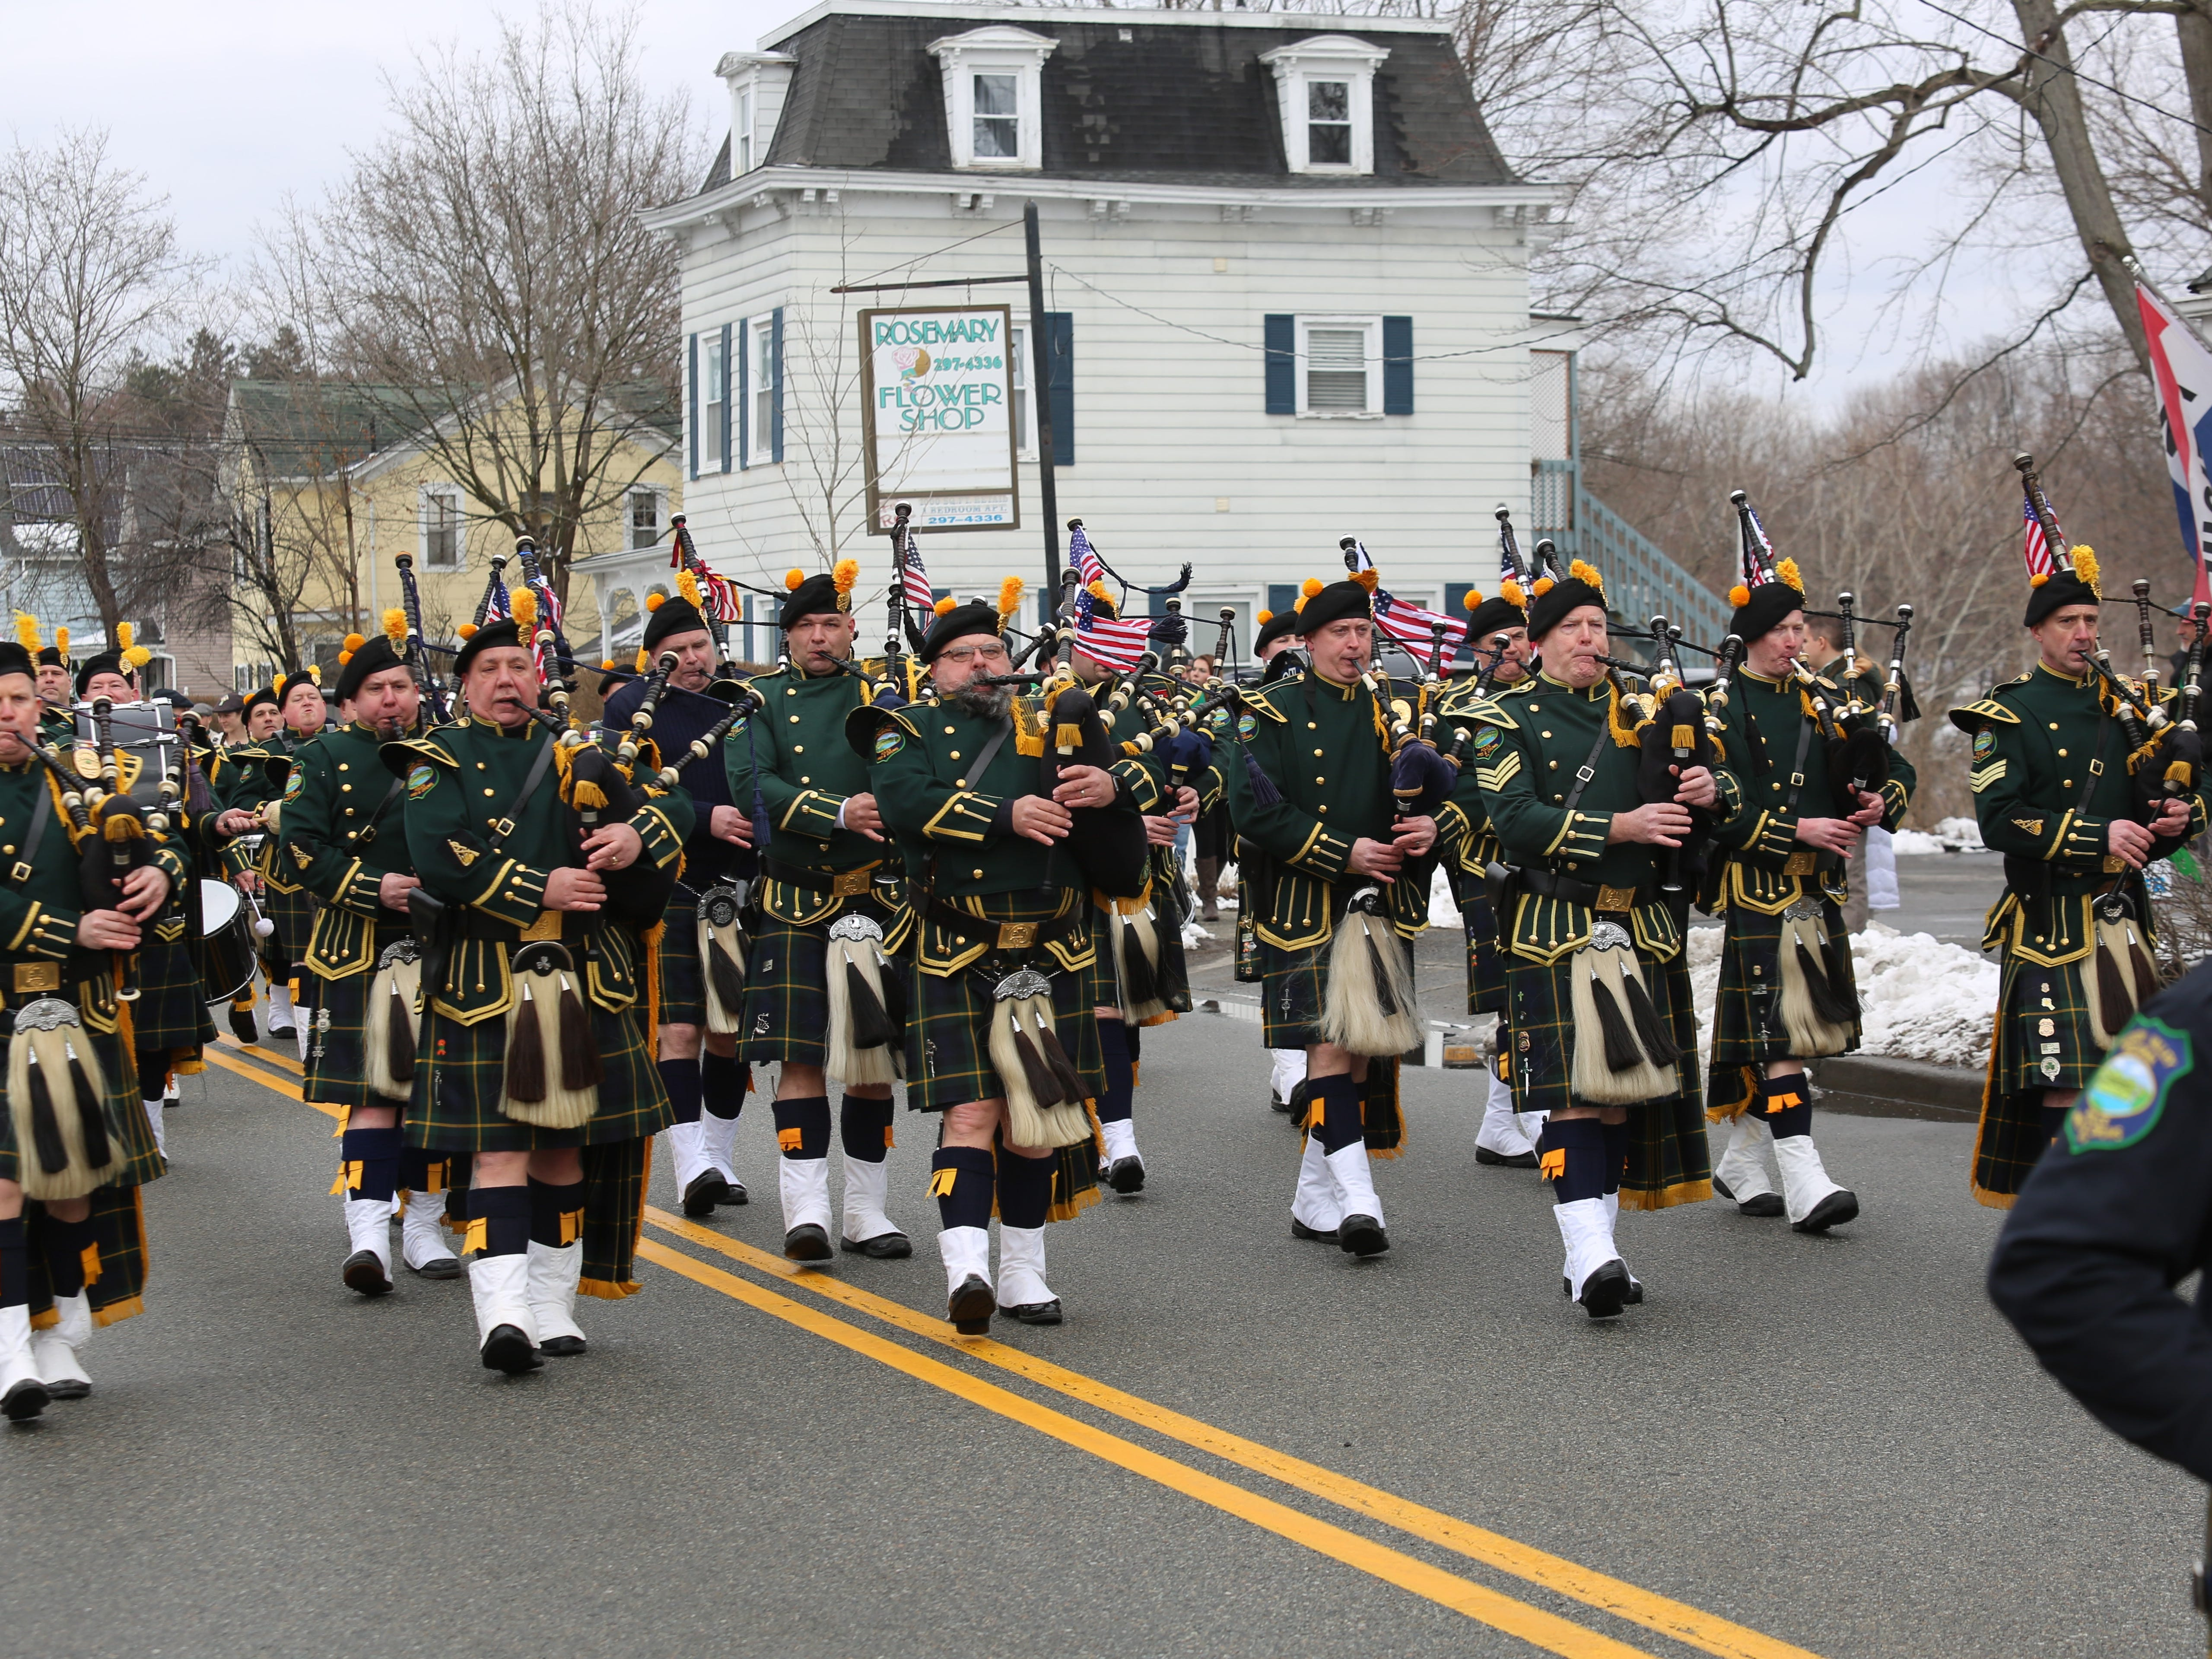 A scene from the 24th annual Dutchess County St. Patrick's Day Parade held in Wappingers Falls.